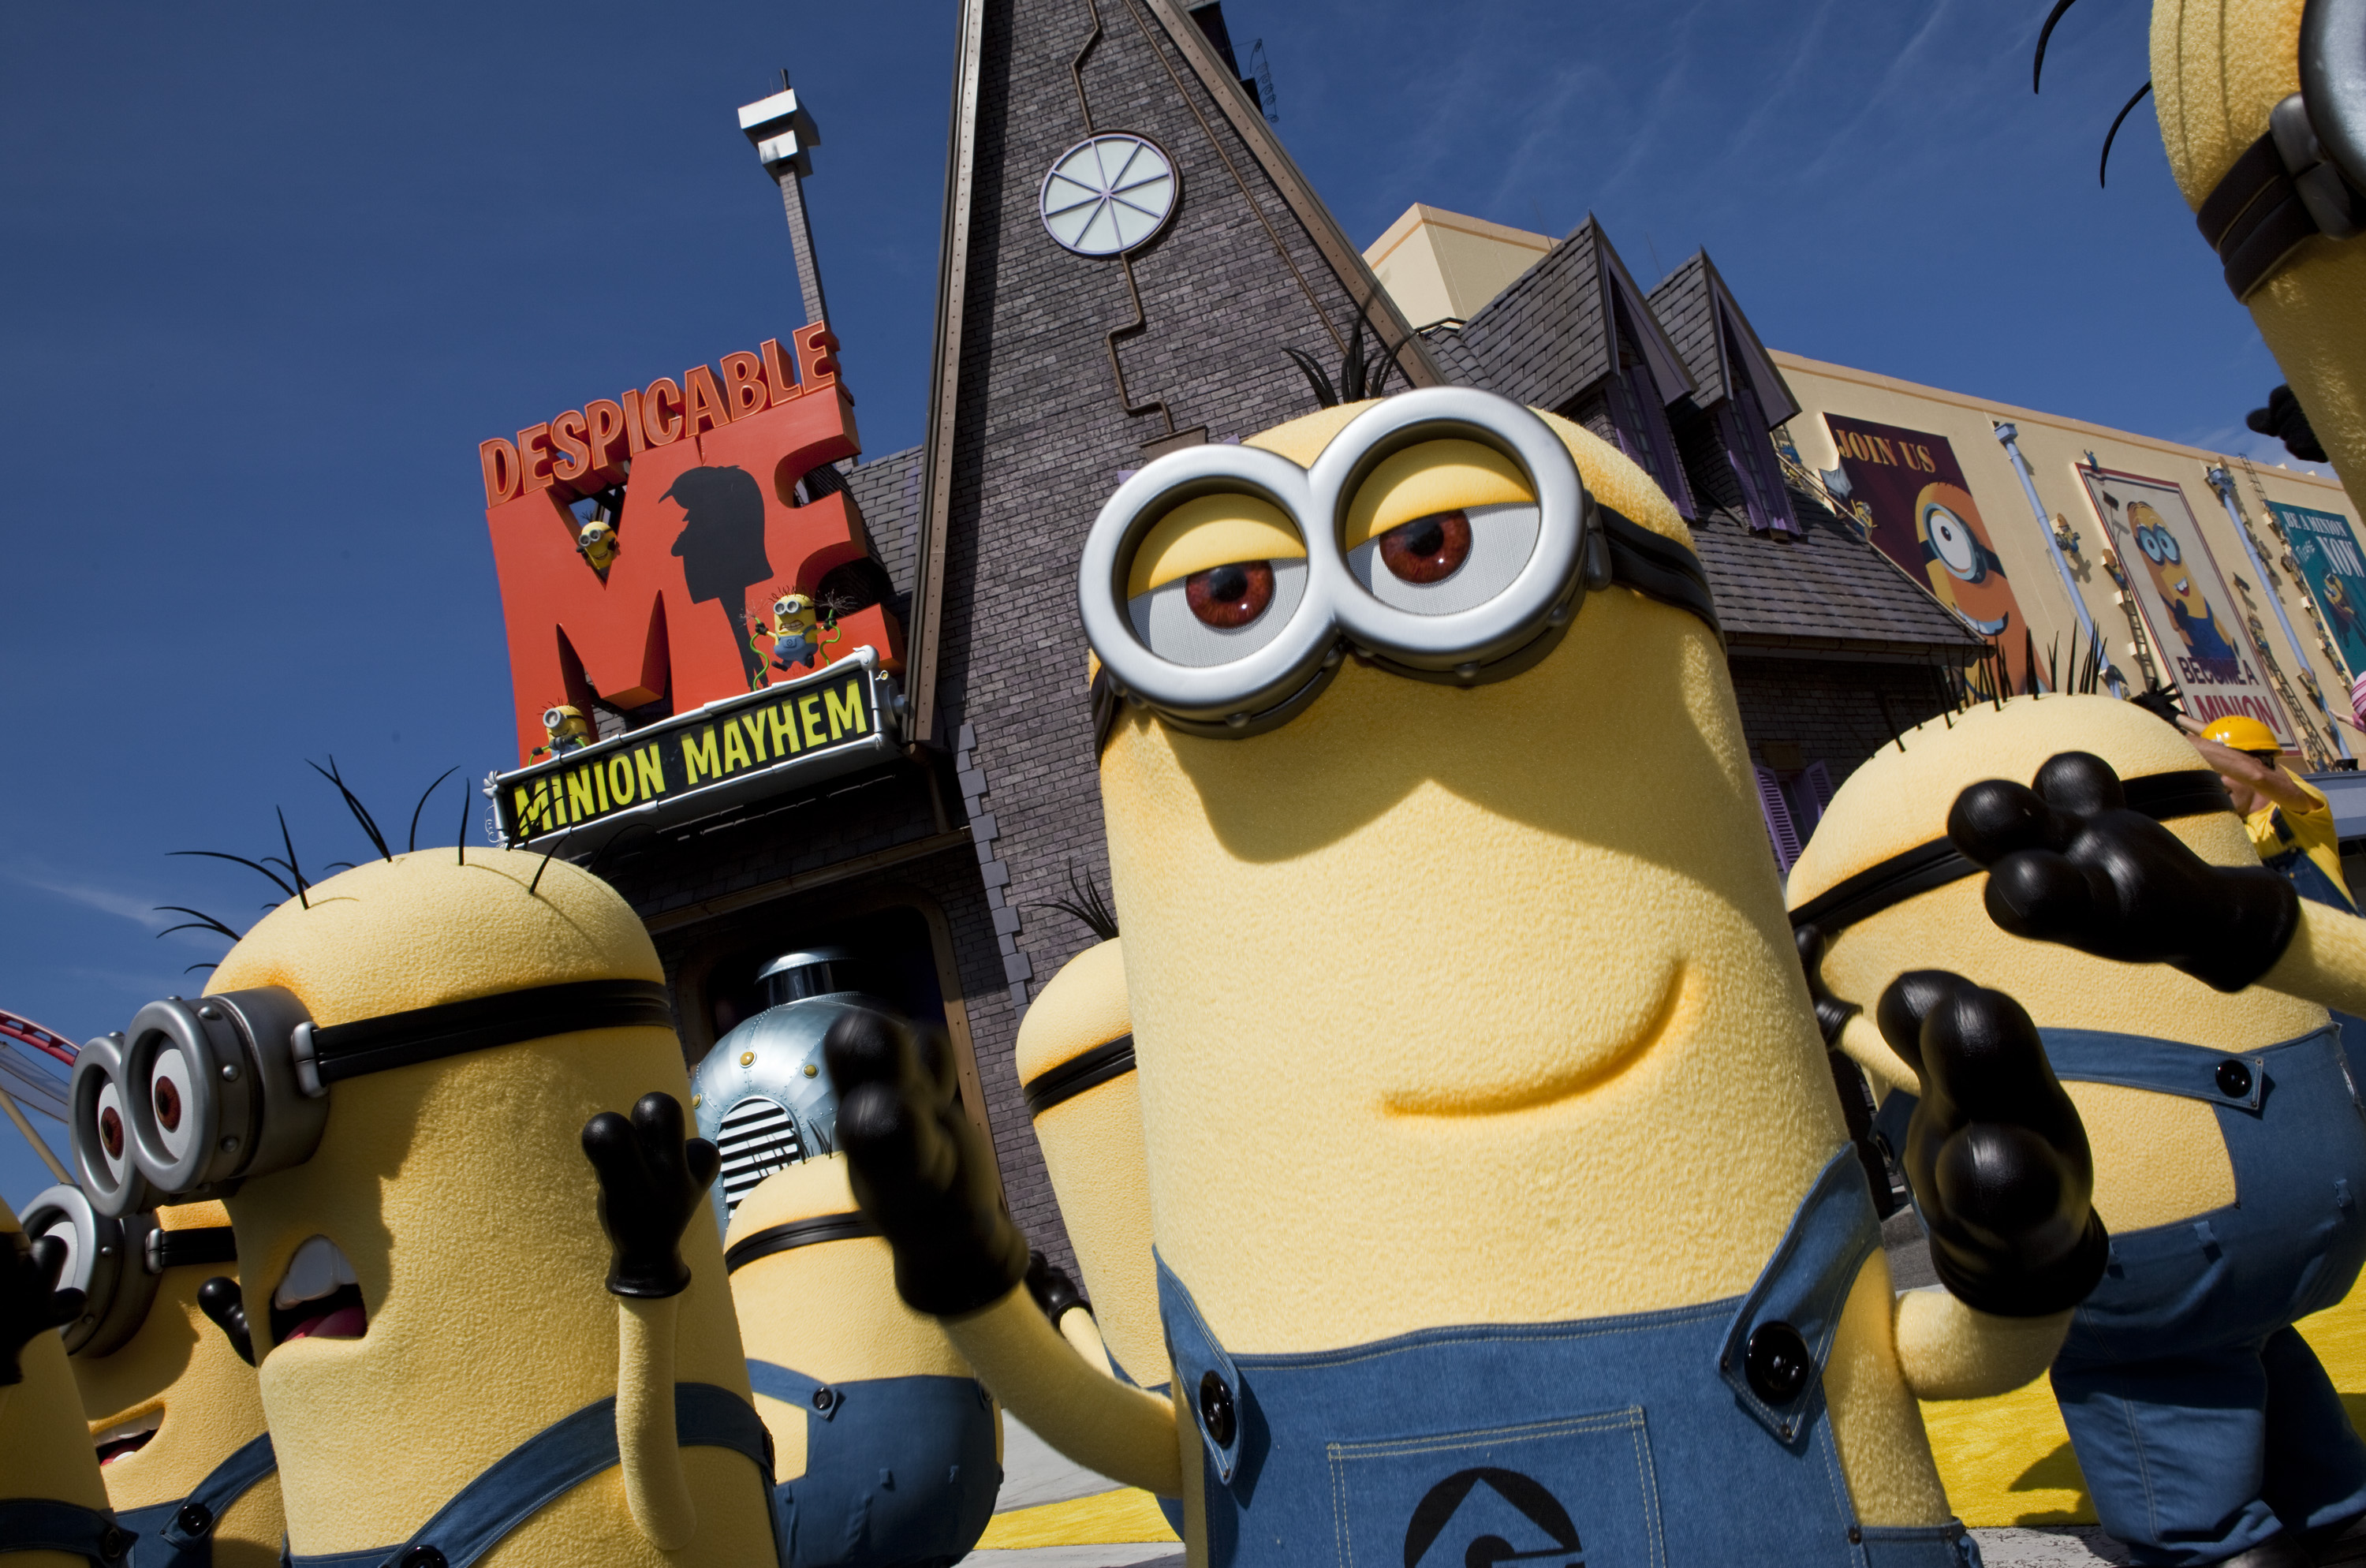 Despicable Me Minion Mayhem Grand Opening 6 3000x1988